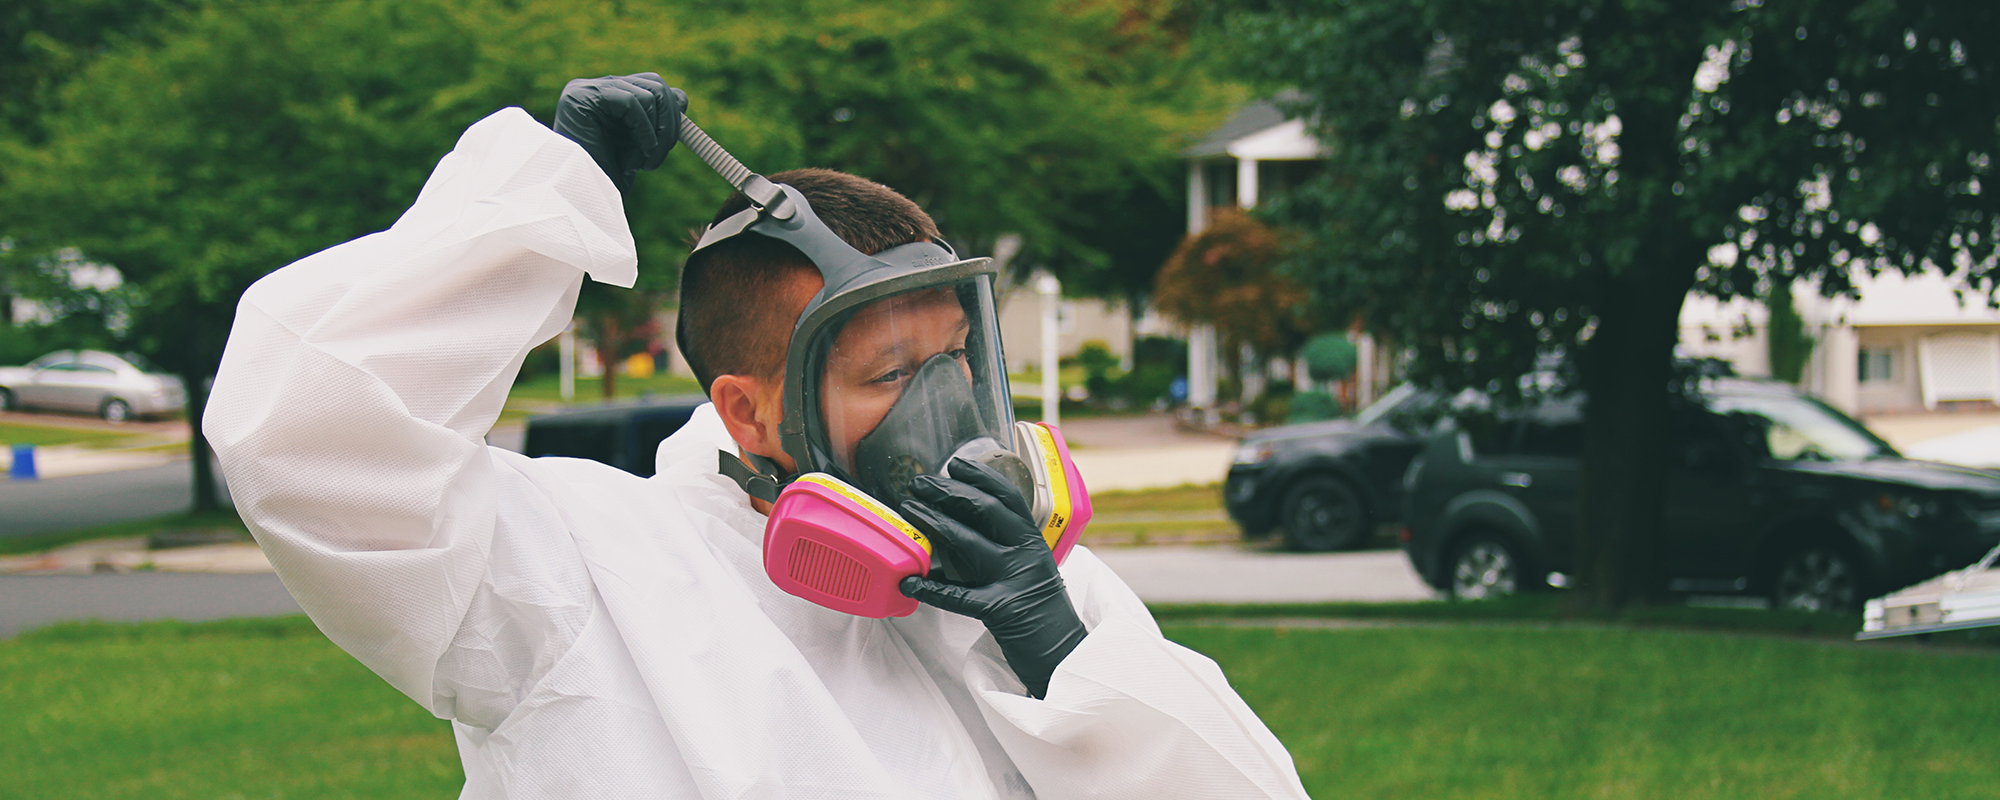 mold-removal-process-woodbury-nj